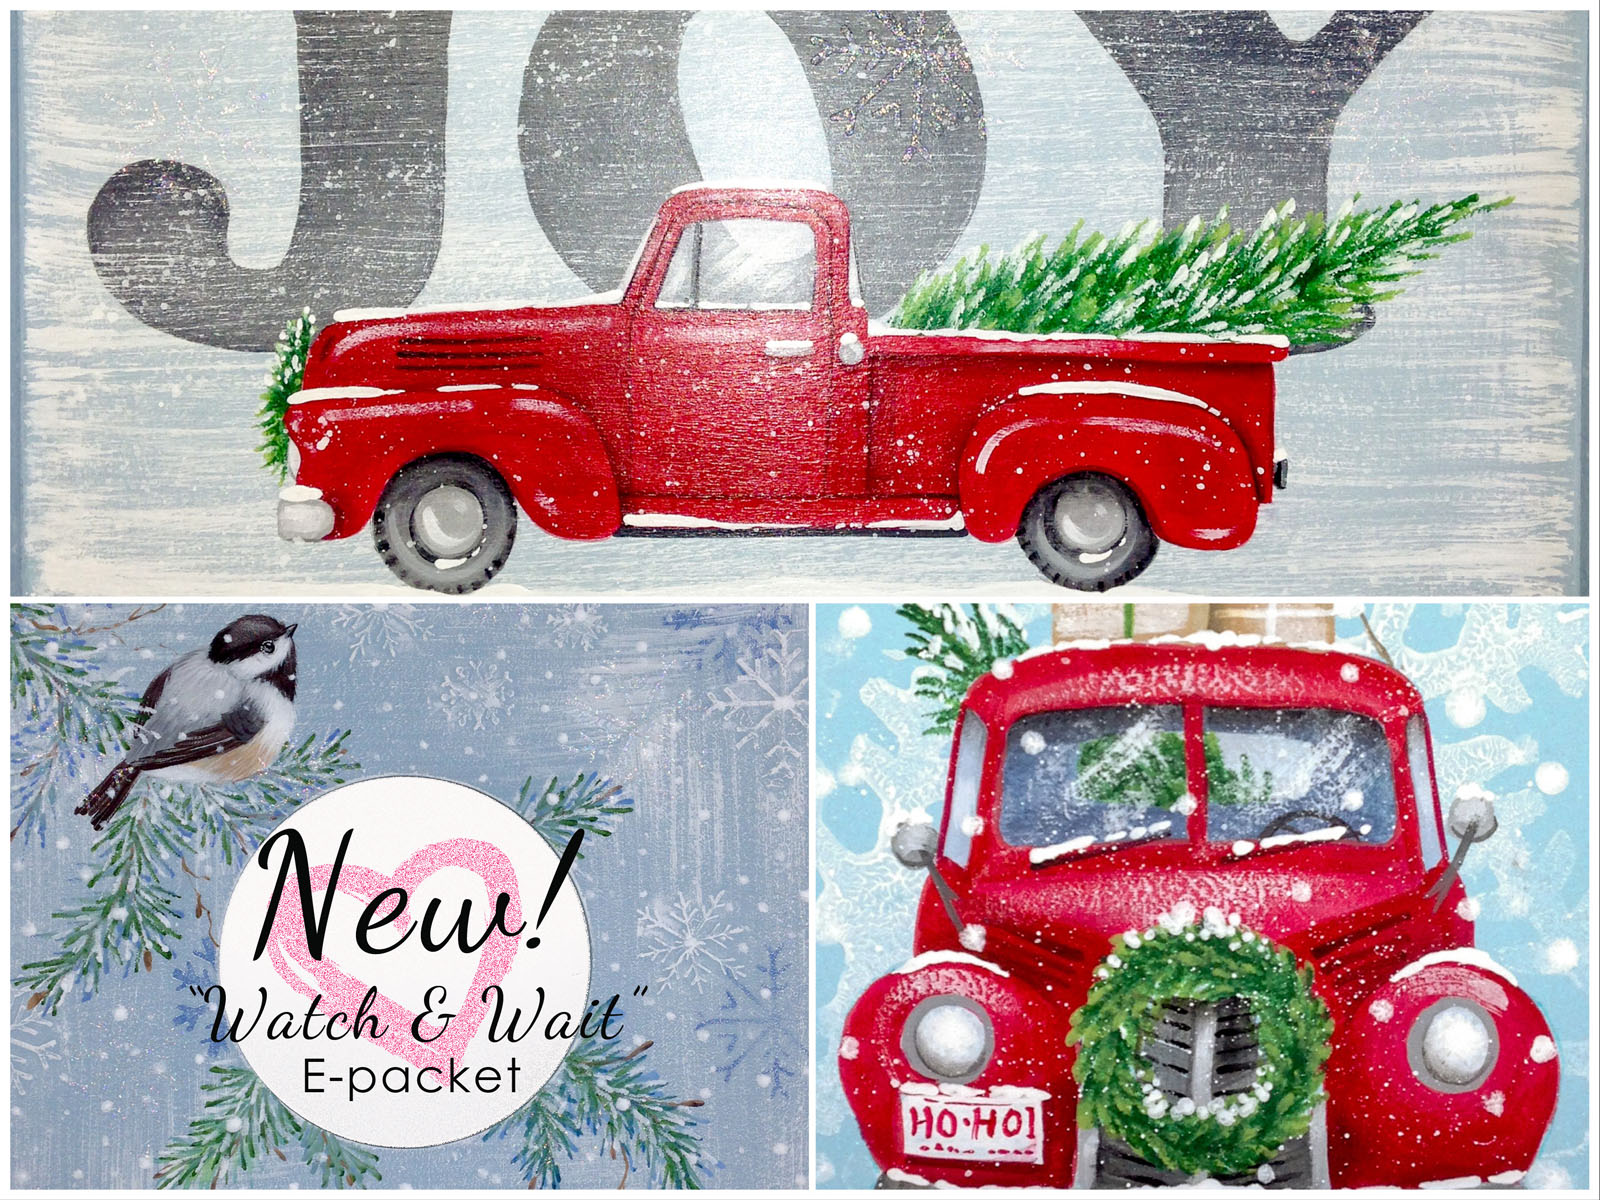 Decorative Painting E-Pattern Packets by Laure Paillex